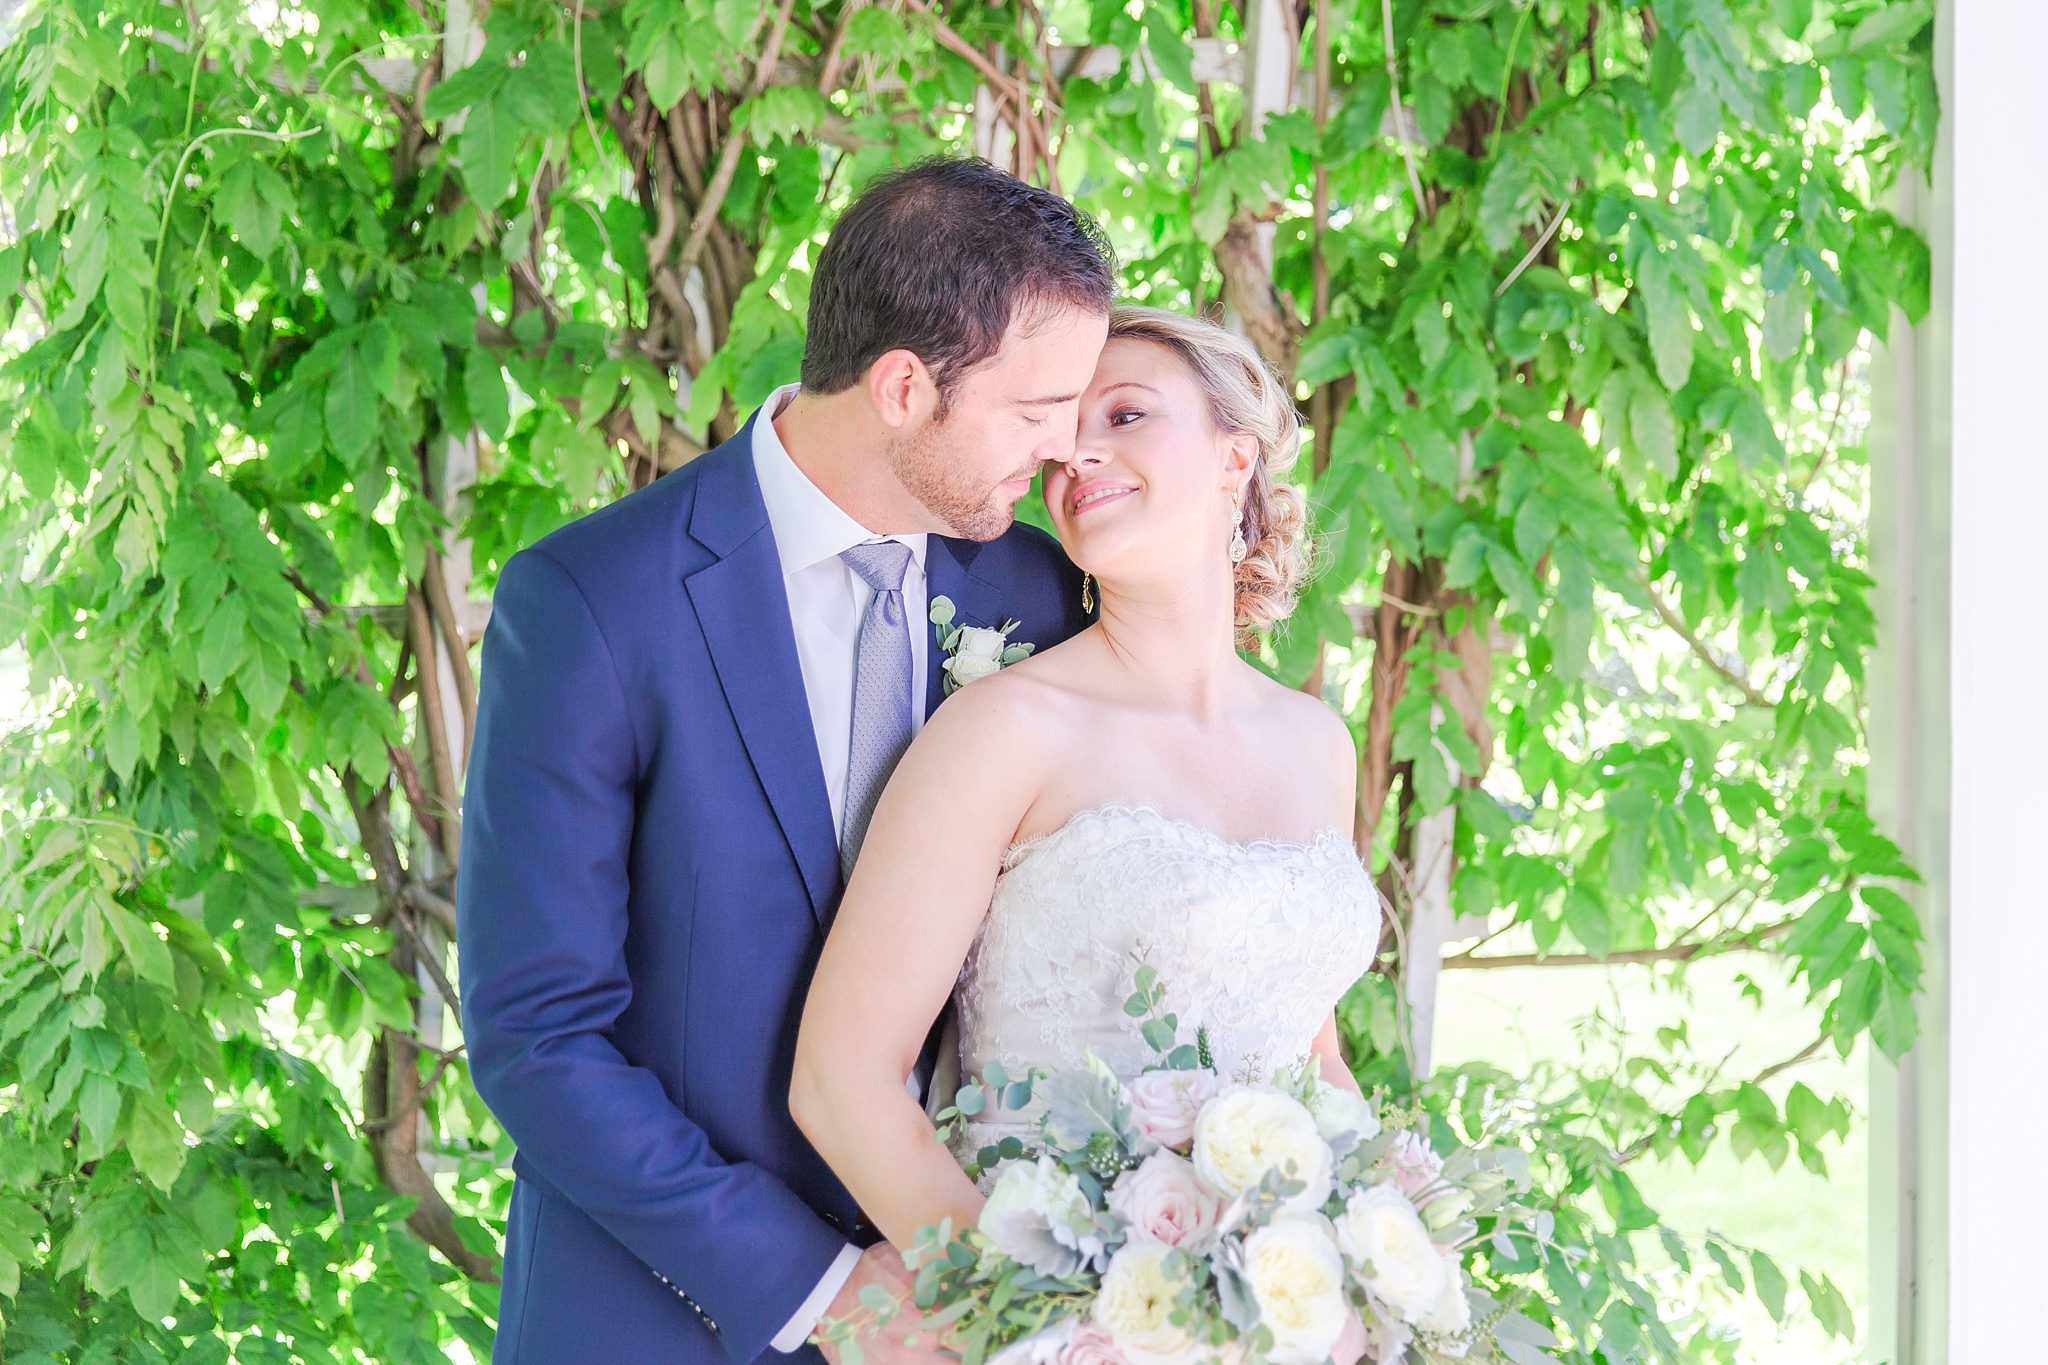 fun-candid-laid-back-wedding-photos-at-wellers-carriage-house-in-saline-michigan-and-at-the-eagle-crest-golf-resort-by-courtney-carolyn-photography_0040.jpg